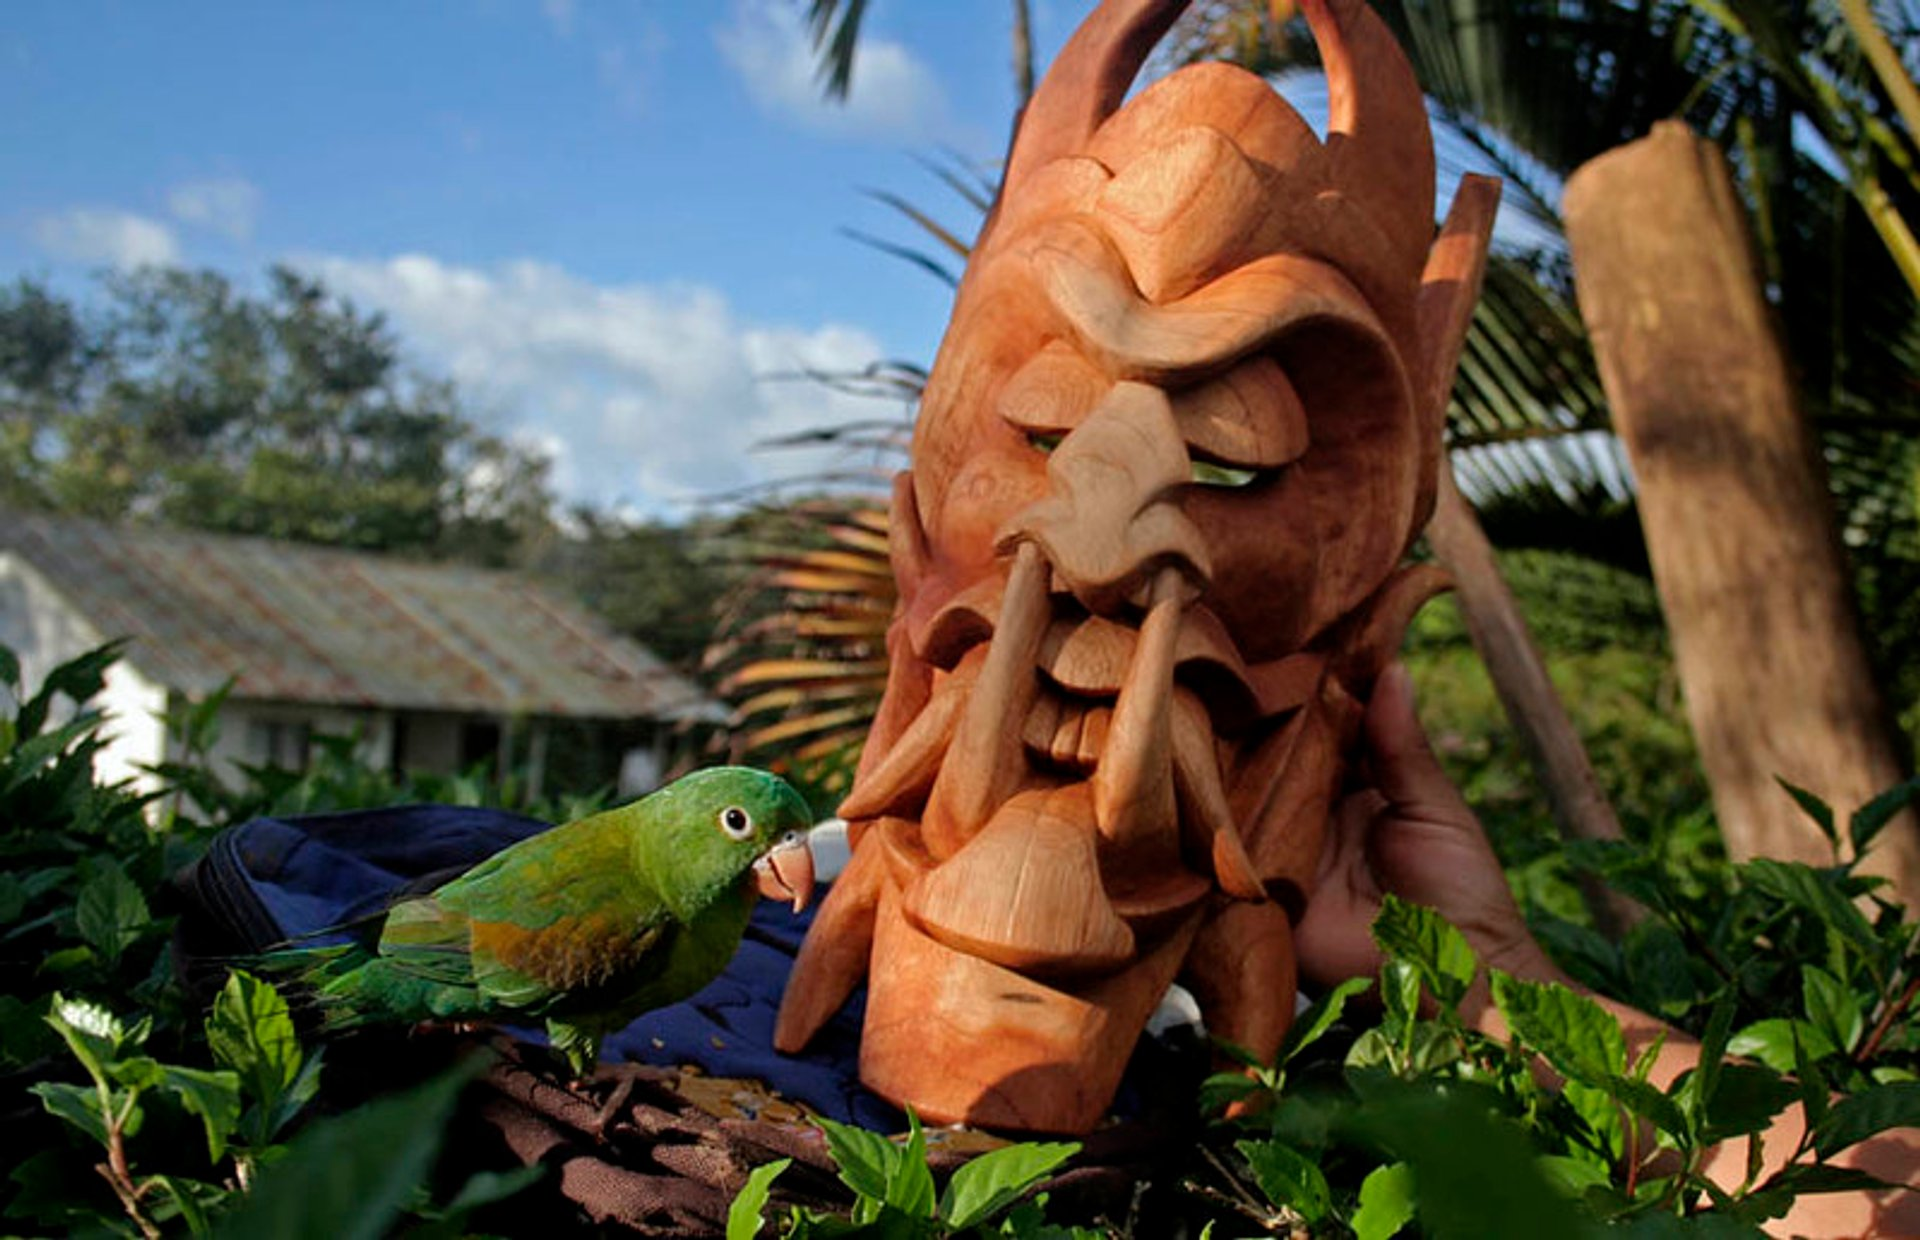 Best time for Festival of the Diablitos in Costa Rica 2020